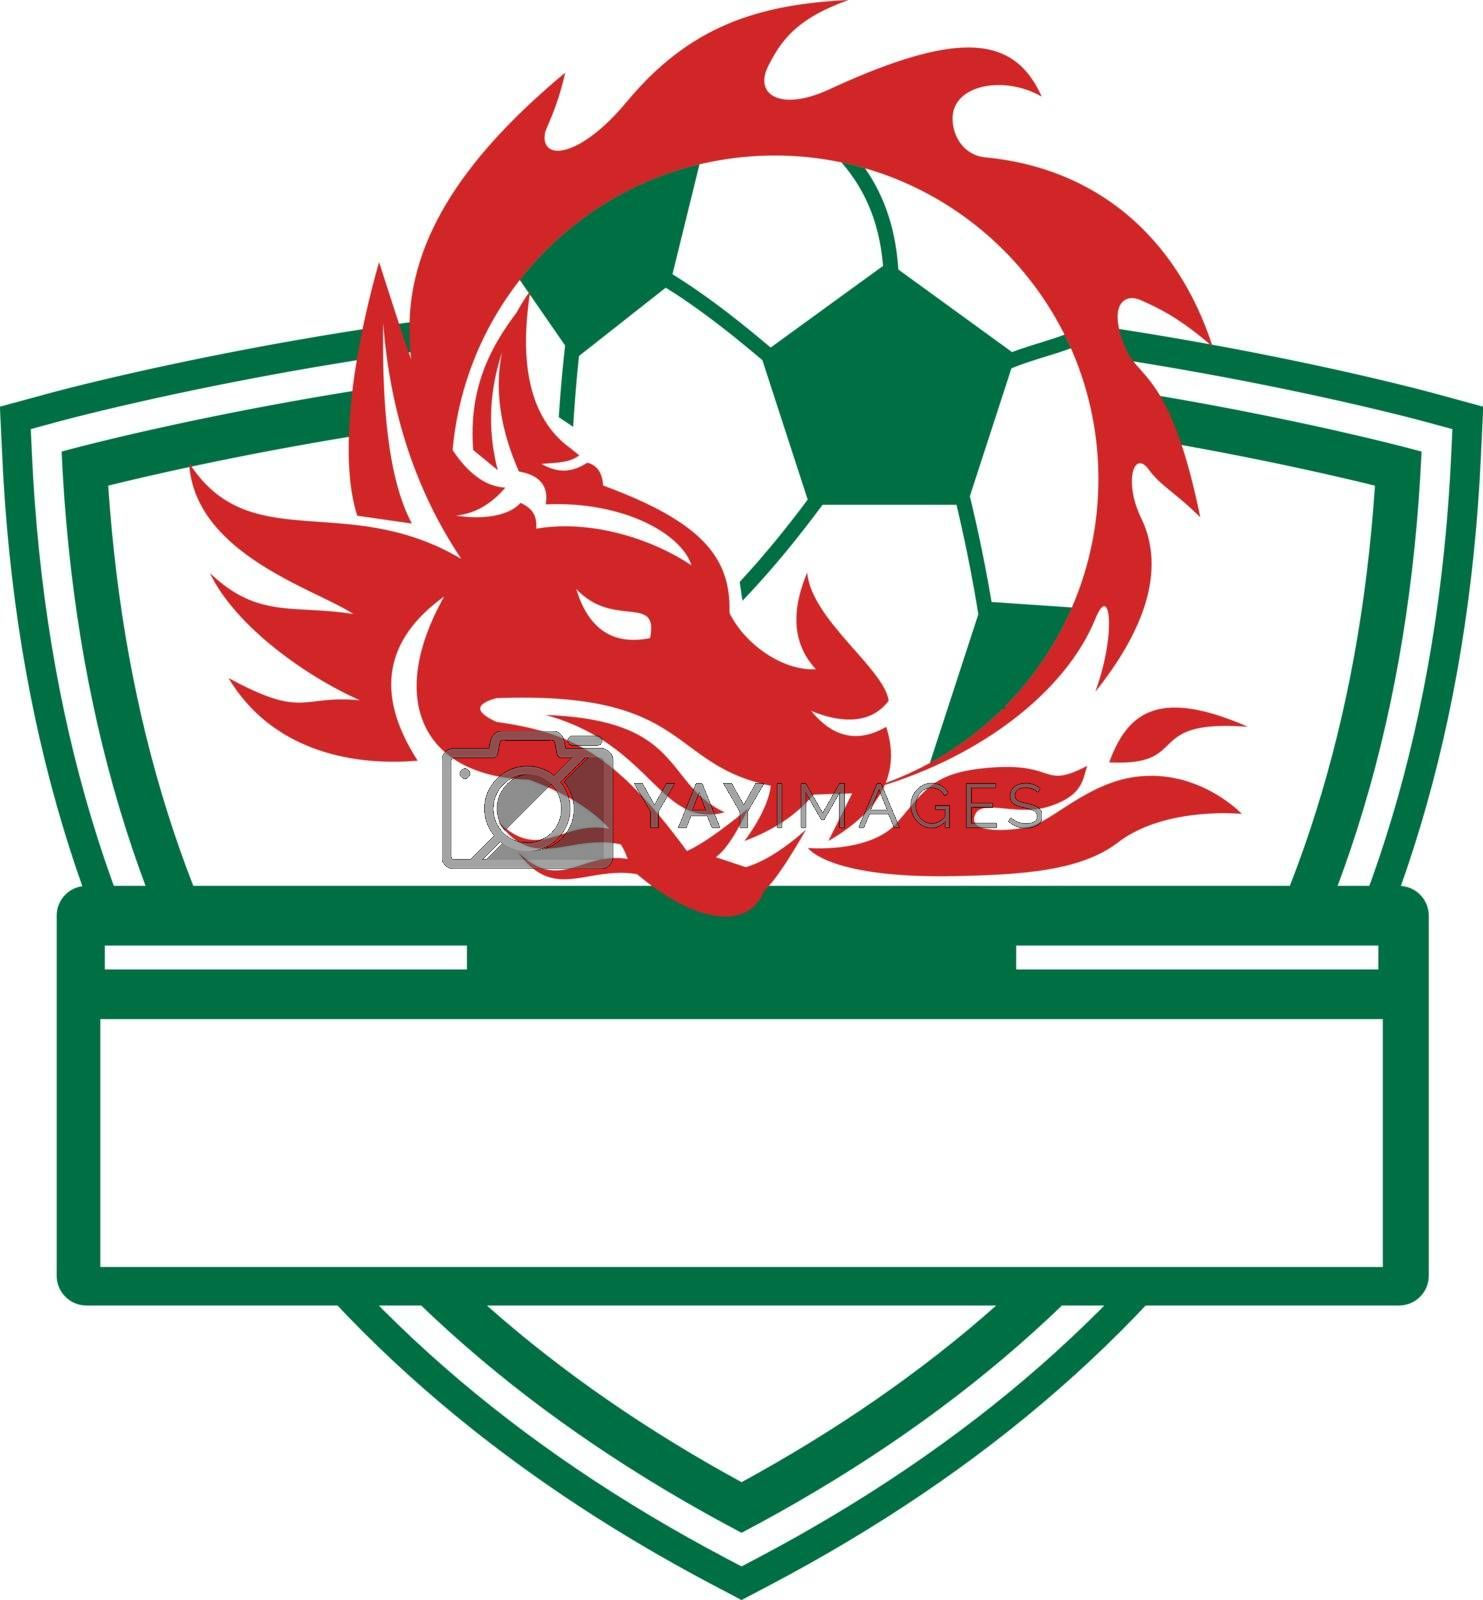 Retro style illustration of a Dragon coling around a Soccer Ball set inside Crest shield on isolated background.